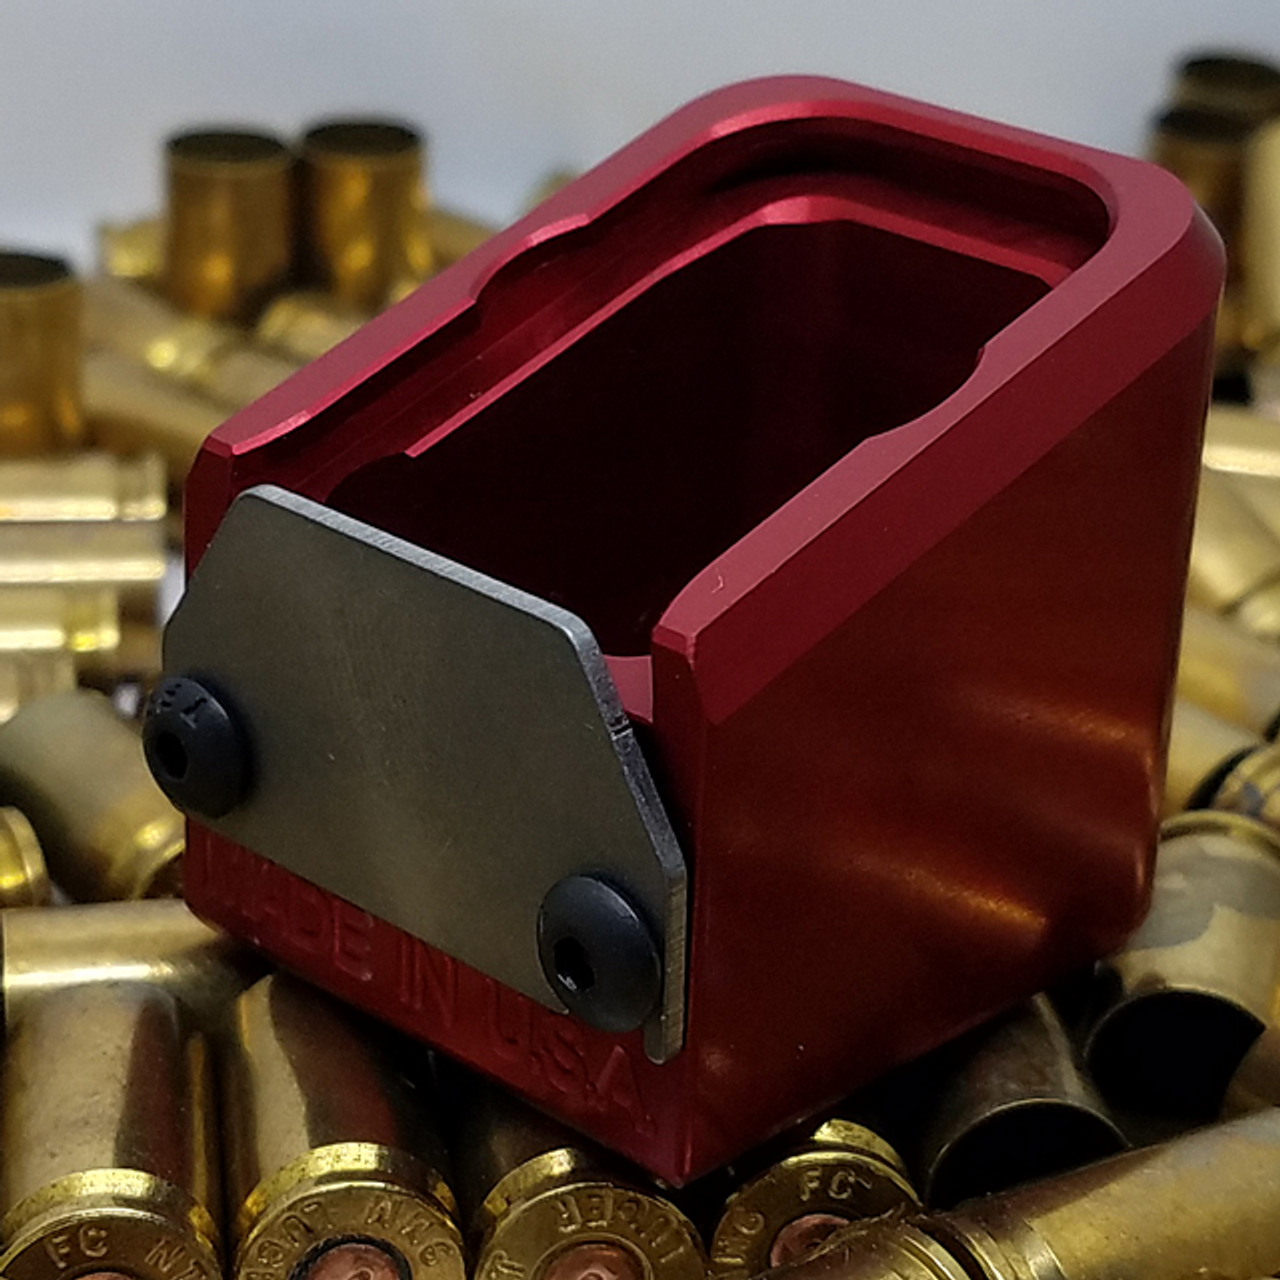 GLOCK +5 RED-ANODIZED ALUMINUM, W/SPRING